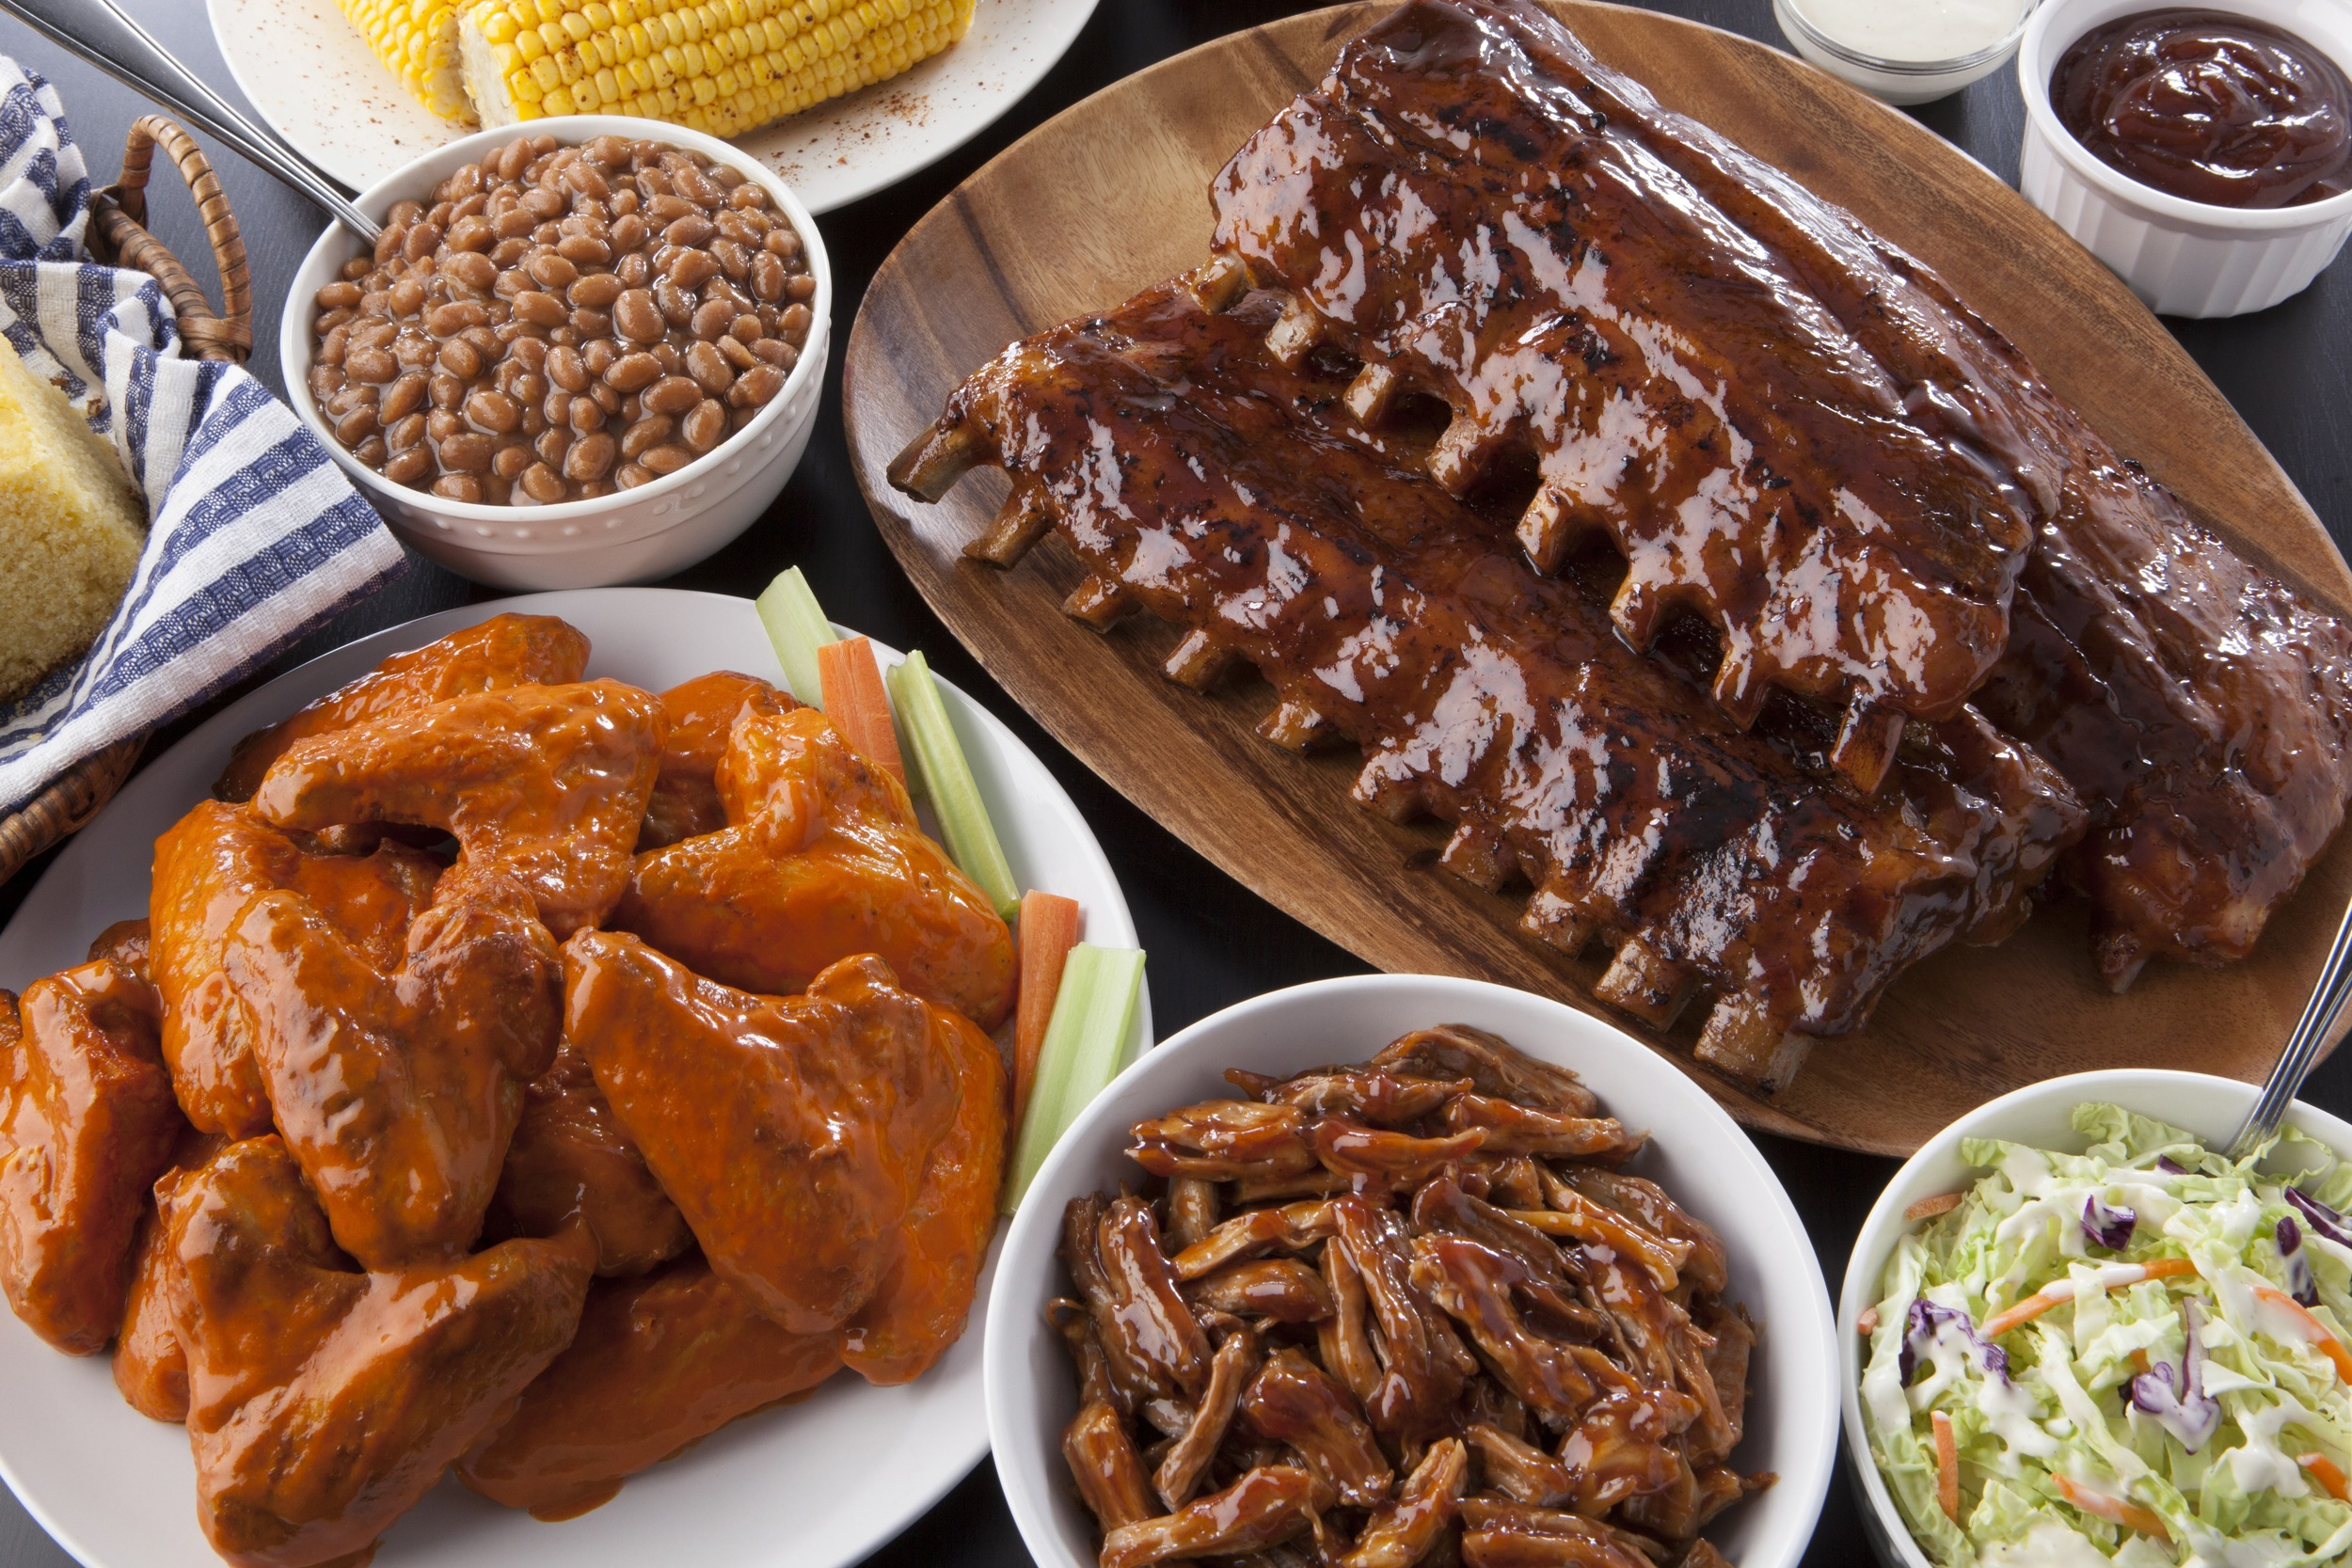 AAA Auto  BBQ Ribs, Chicken Wings, Pulled Pork,  Bushes Baked Beans, Cole Slaw